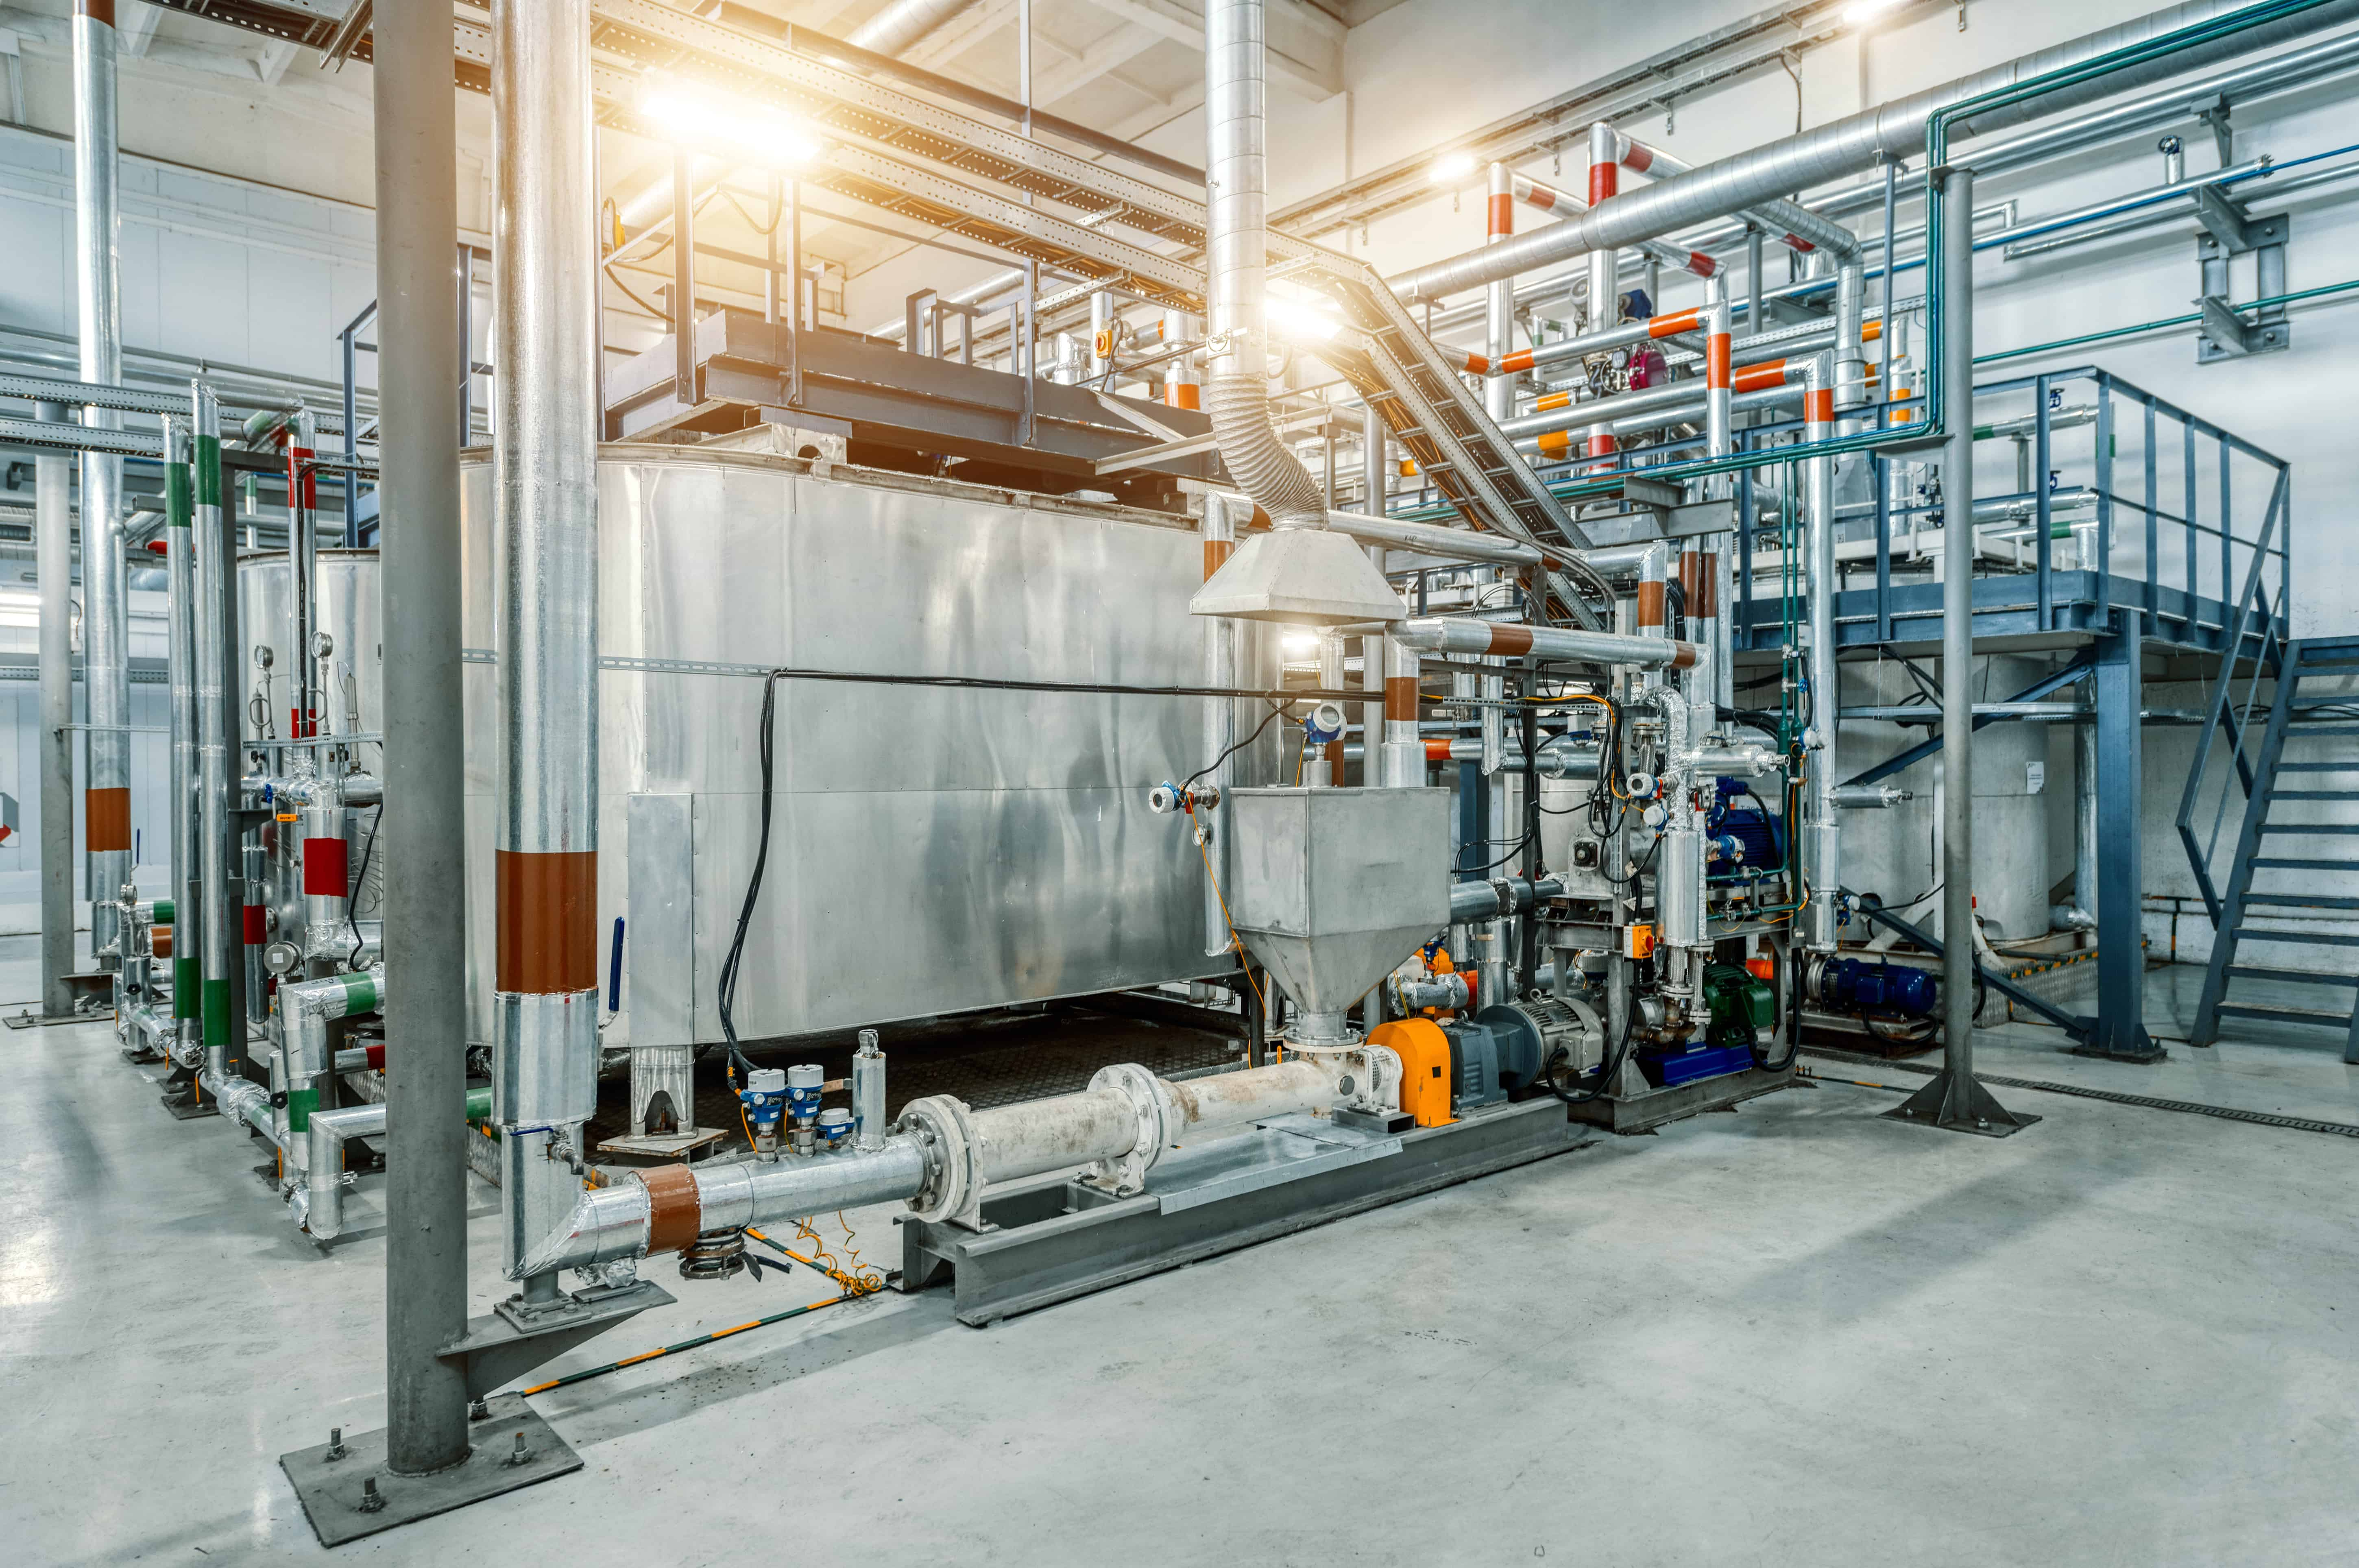 Online viscosity monitoring for quality control in emulsions formulation, testing and processing